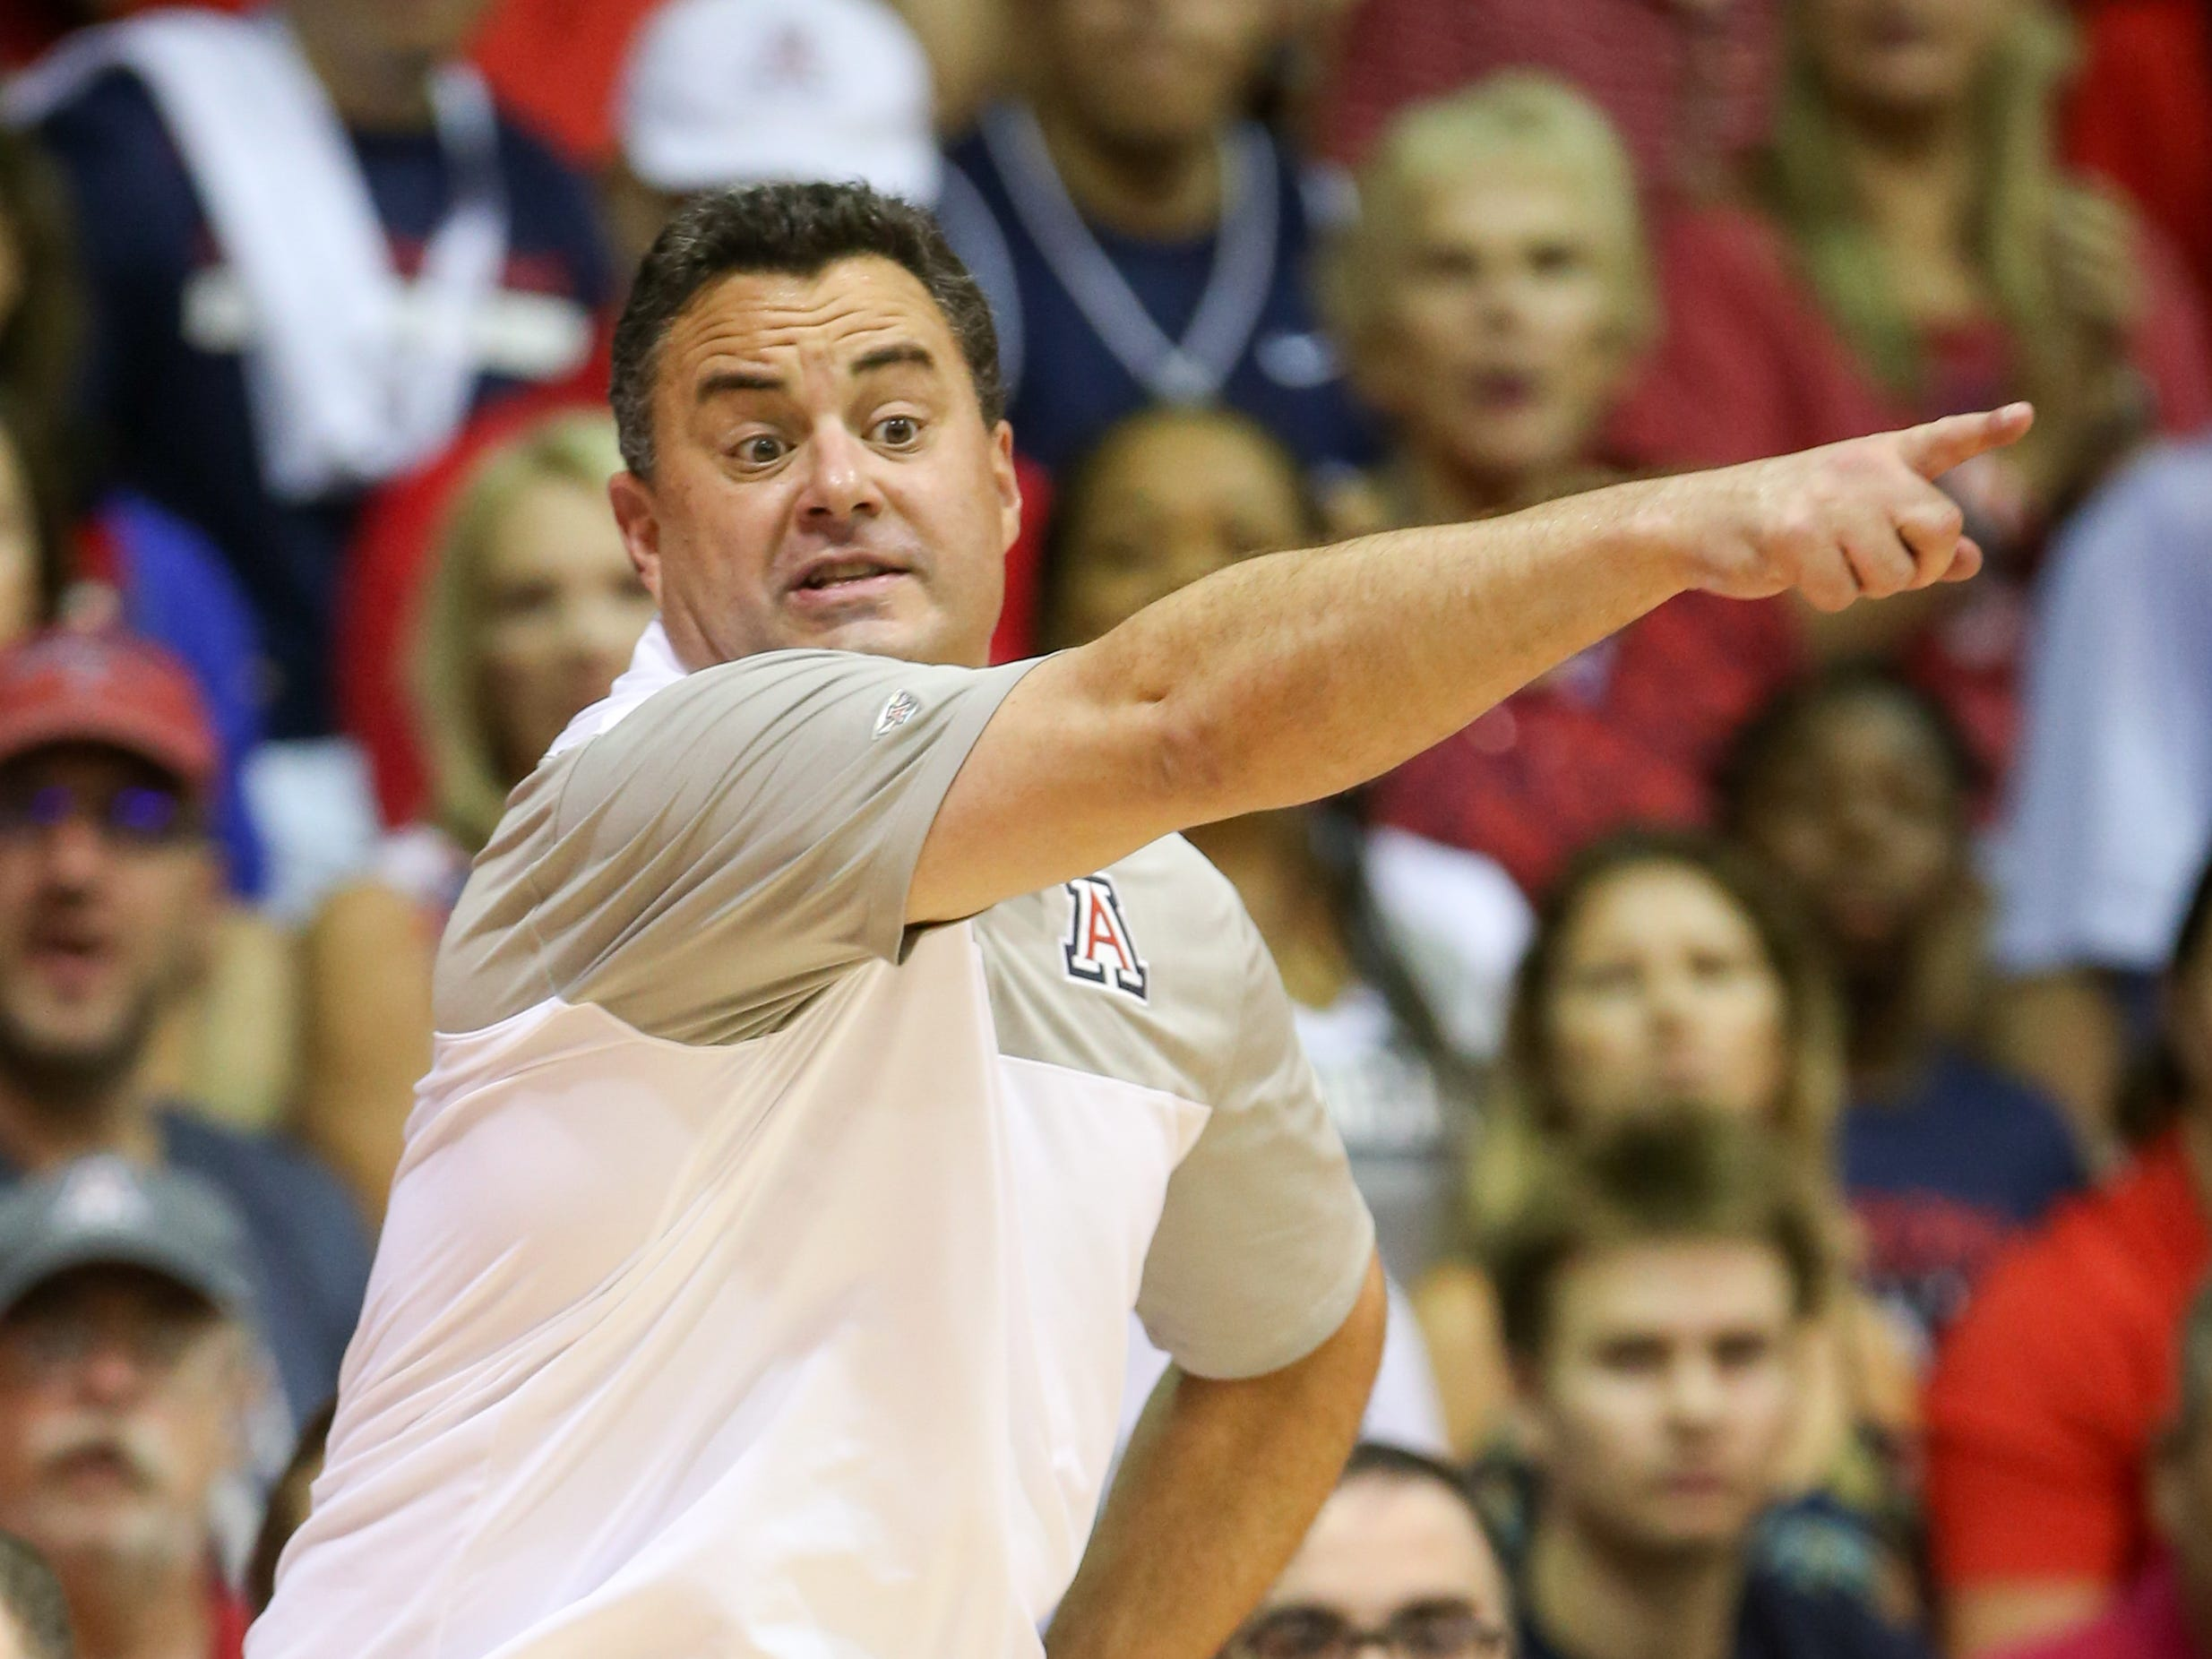 Head coach Sean Miller of the Arizona Wildcats directs his team during the first half of the game against the Gonzaga Bulldogs at the Lahaina Civic Center on November 20, 2018 in Lahaina, Hawaii.